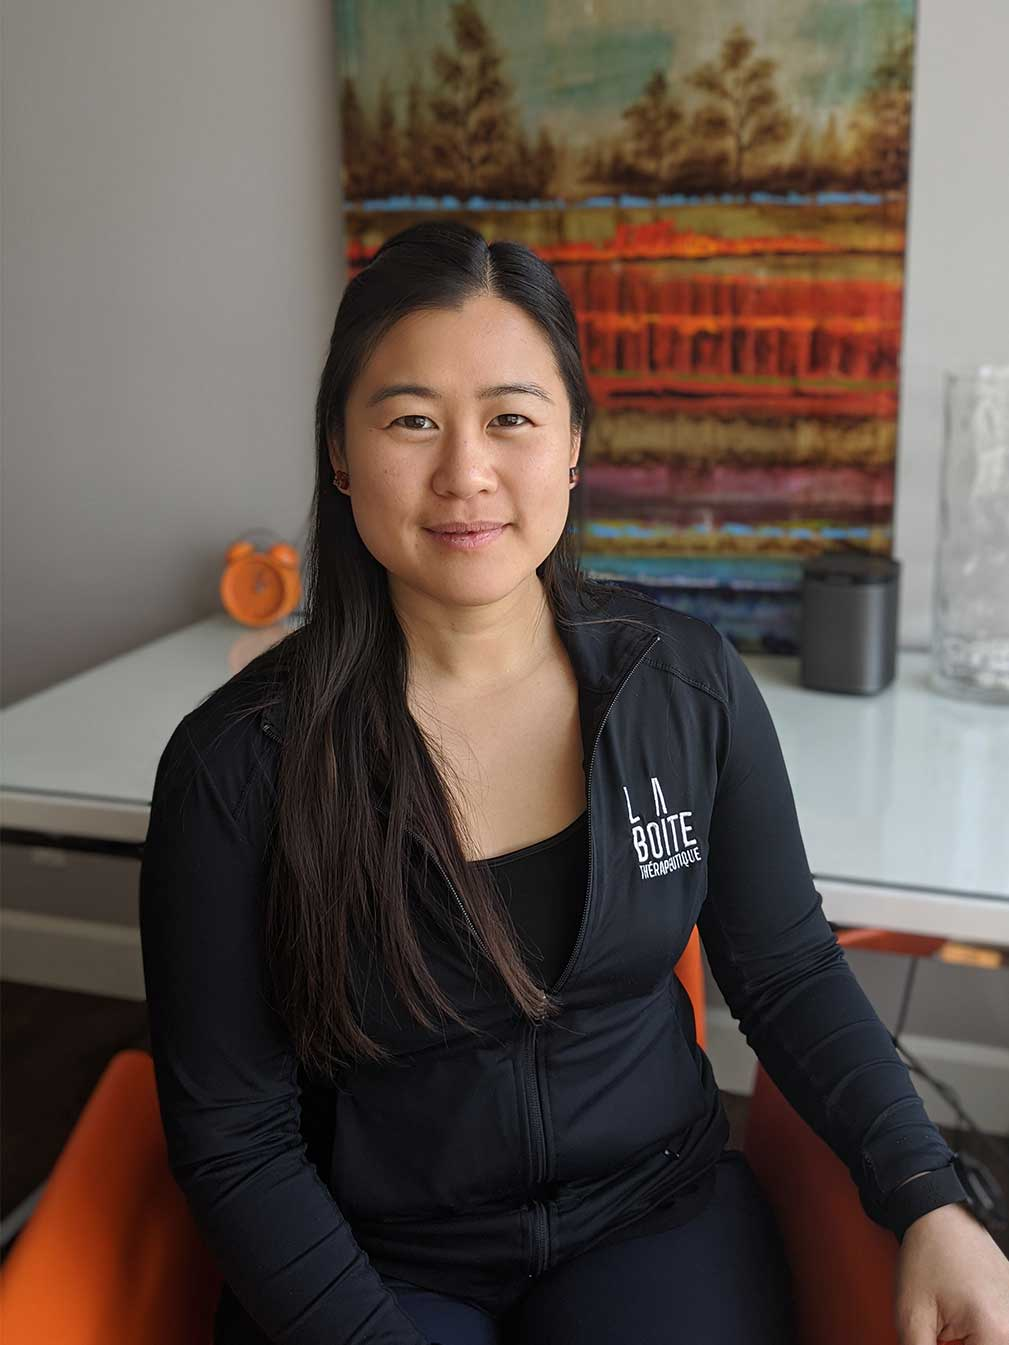 Marie-Rose Luong, Pht., M.Sc.